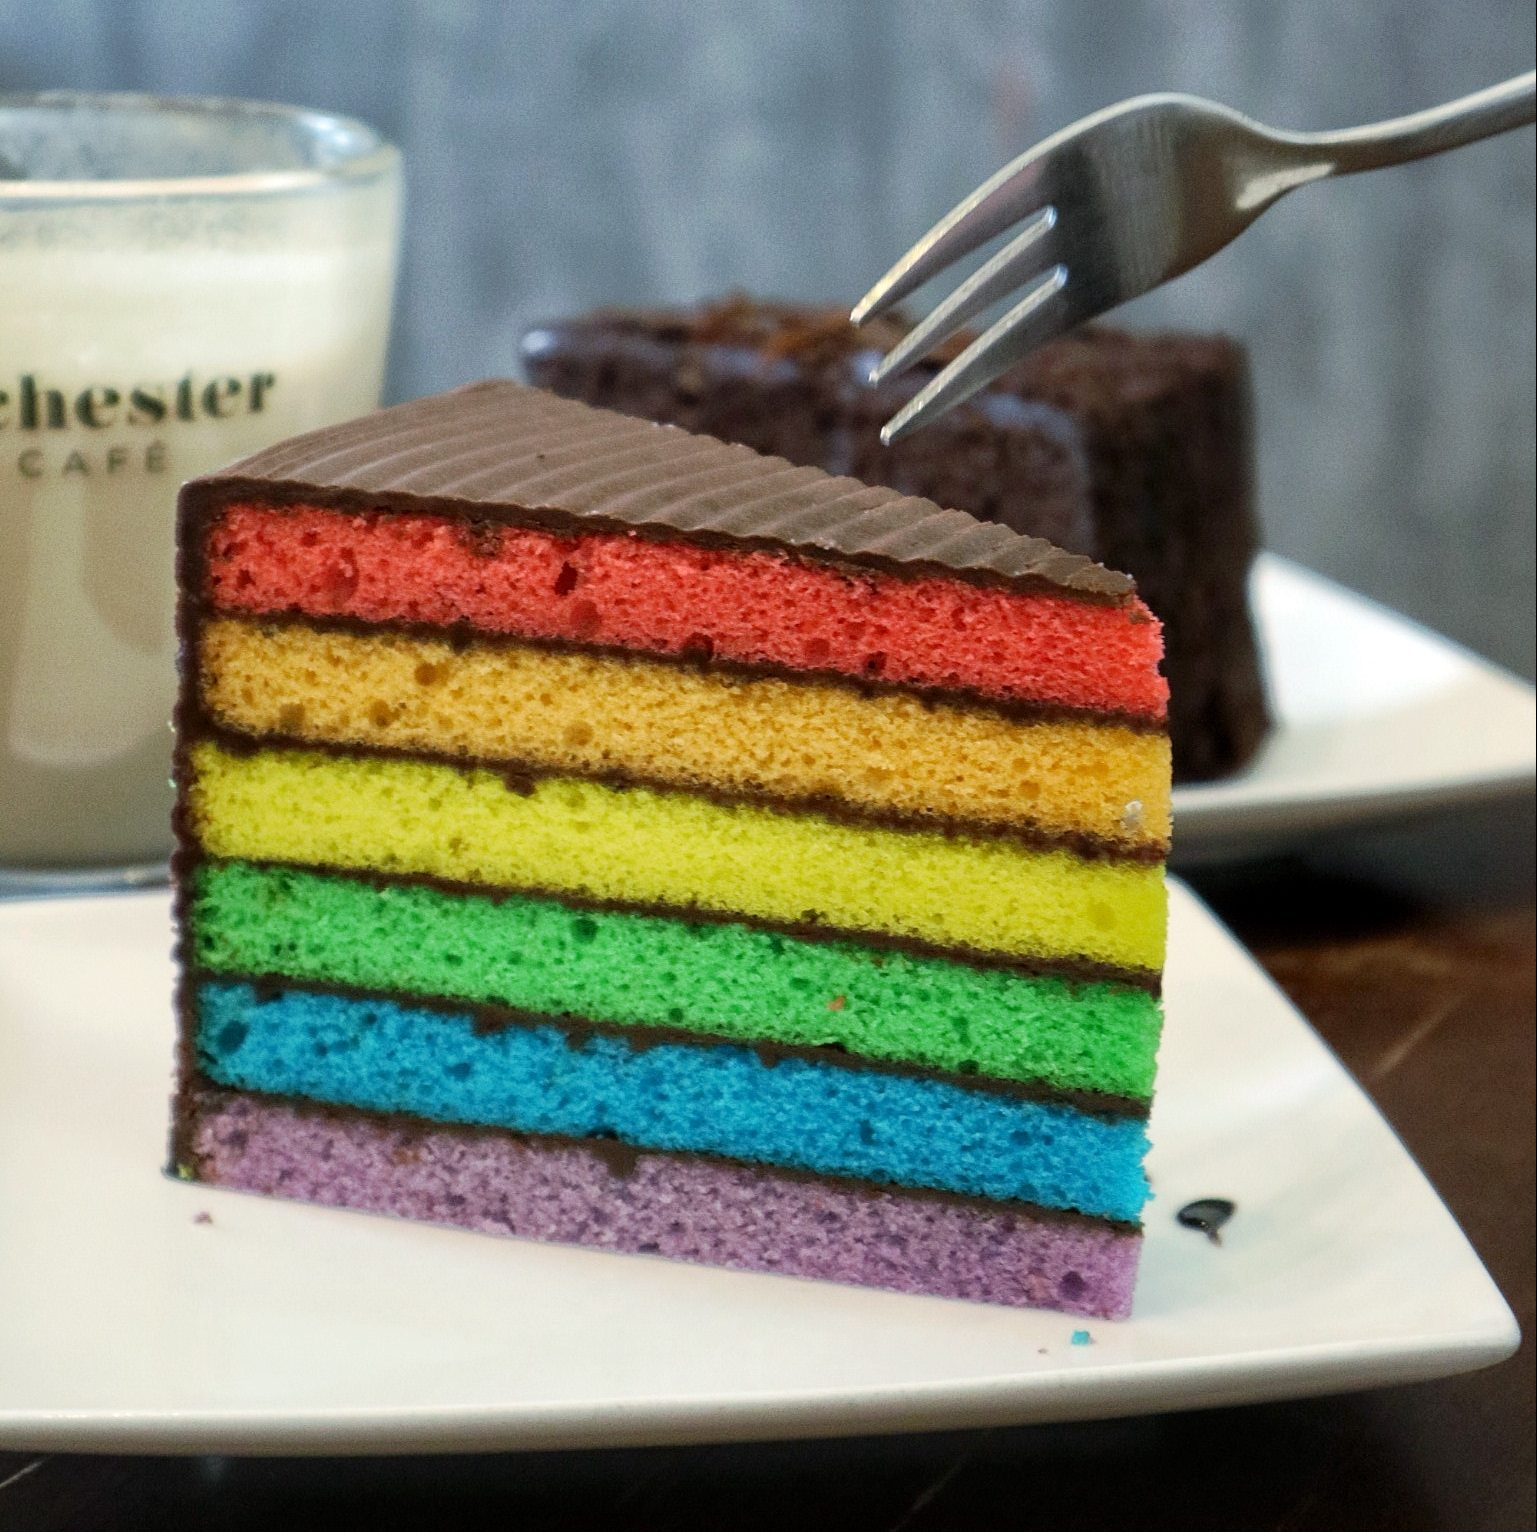 Rochester Café: New Cosy Coffee Place with Rainbow Cake, Charcoal Waffle & Ice Cream